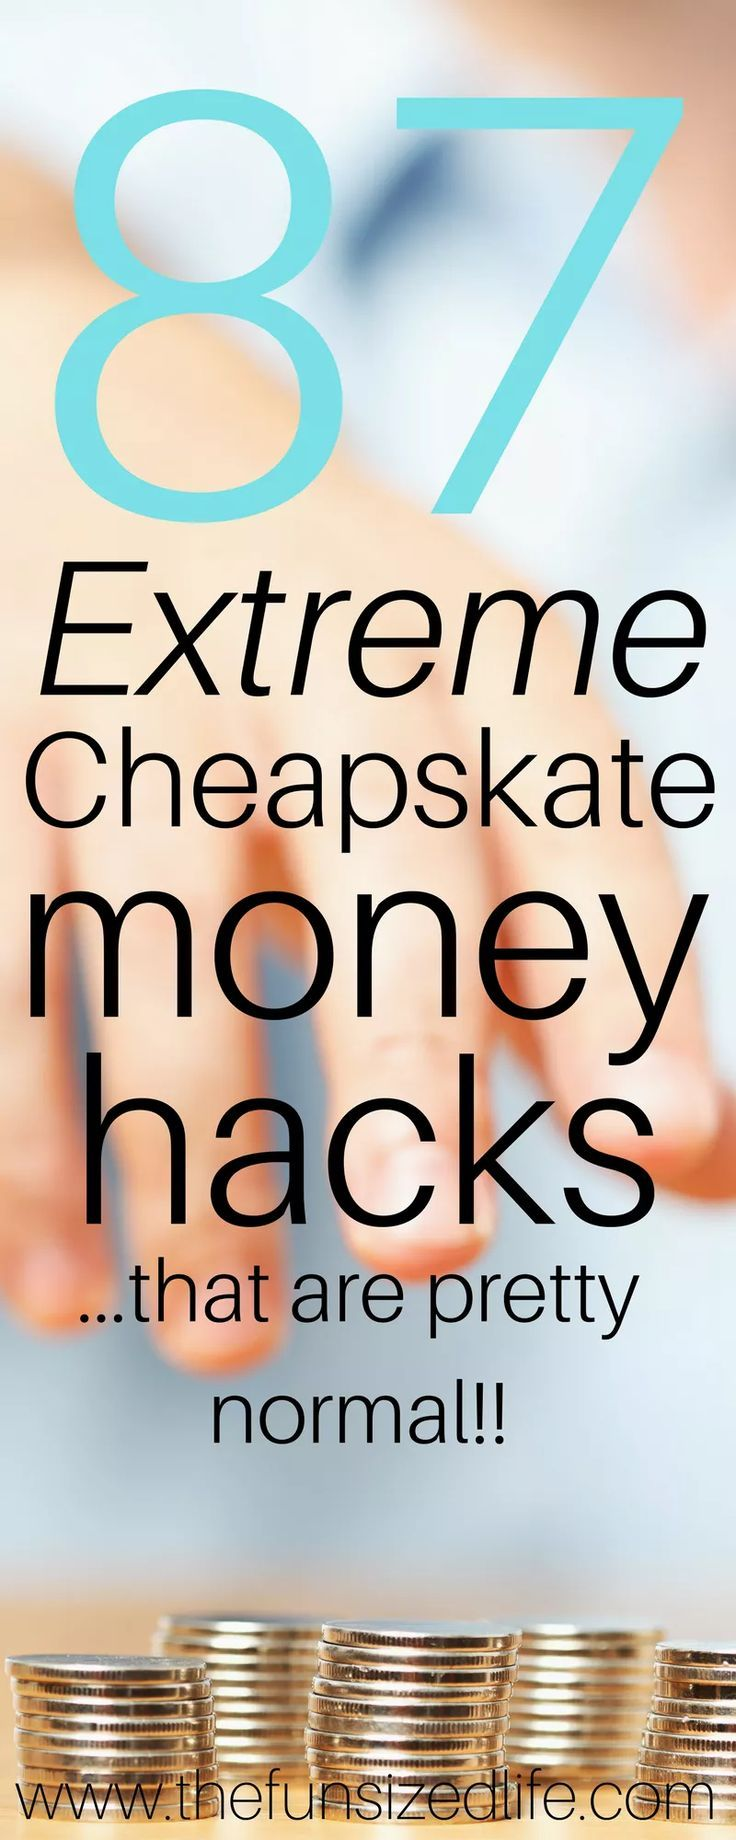 87 Extreme Cheapskates Money Hacks That Are Pretty Normal